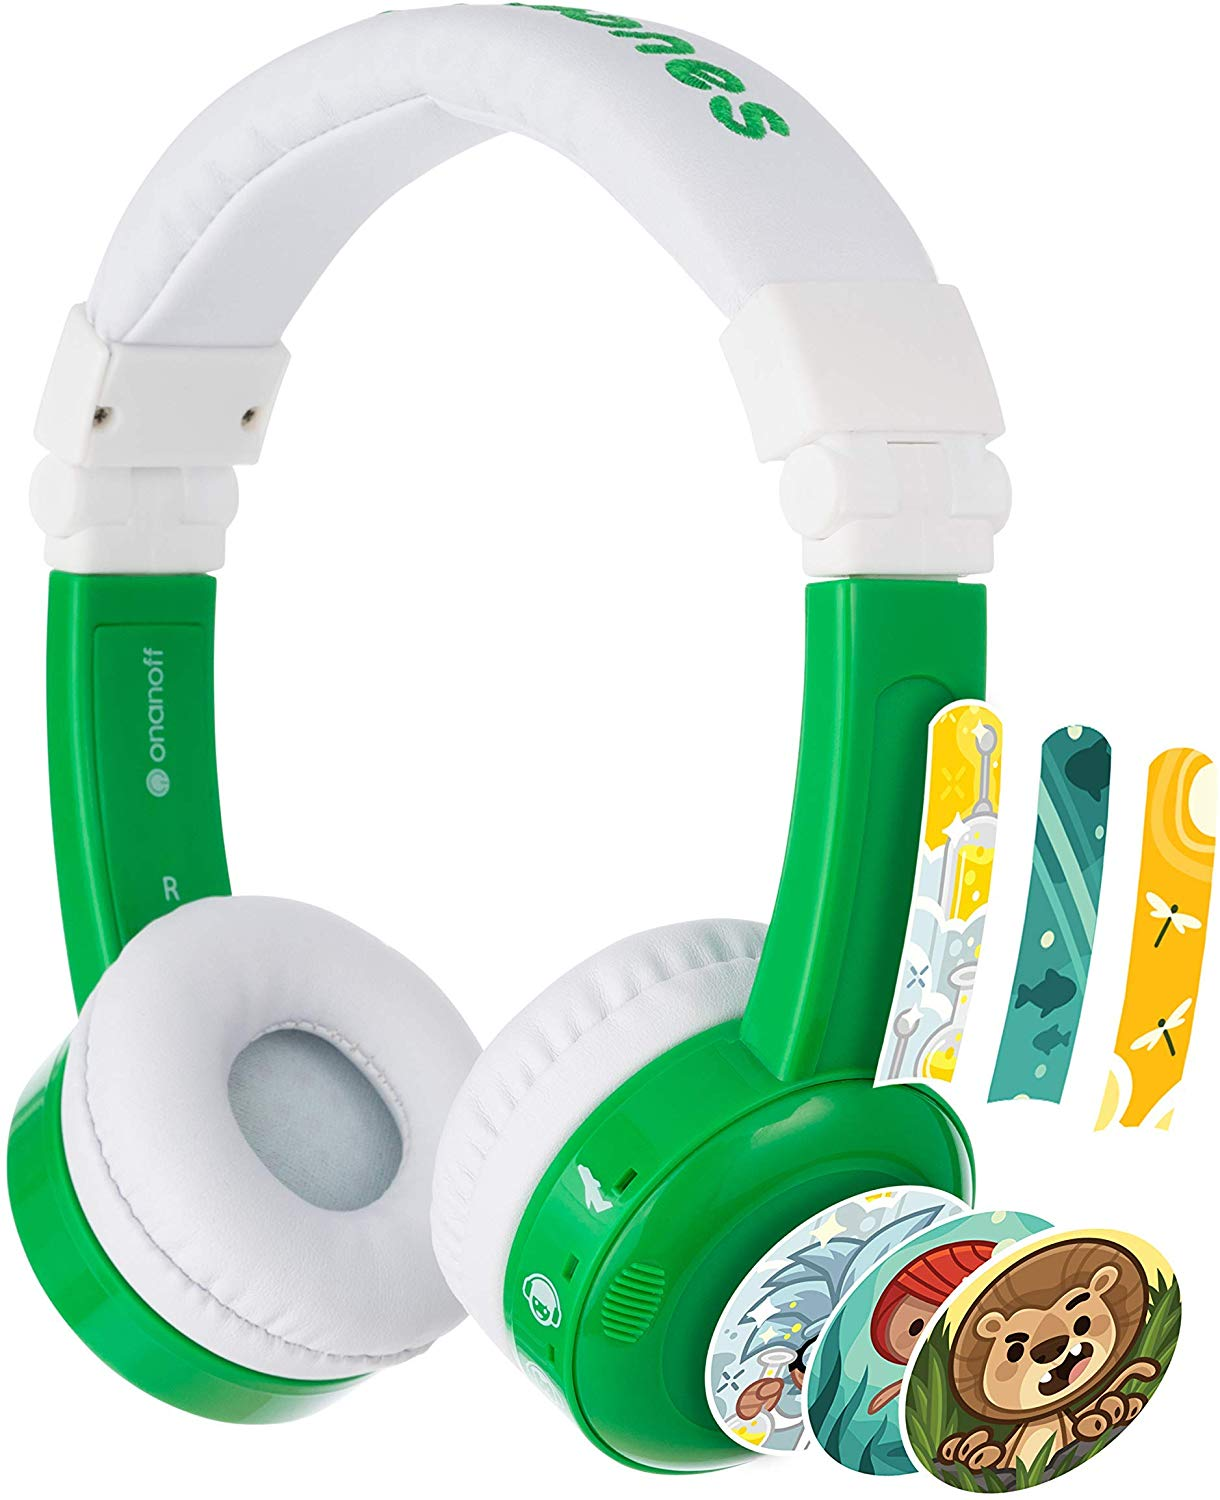 BuddyPhones Inflight, Volume-Limiting Kids Headphones, 3 Volume Settings of 75, 85 and 94 dB, Includes Travel Mode, Perfect for Airplanes, Trains and Cars,...